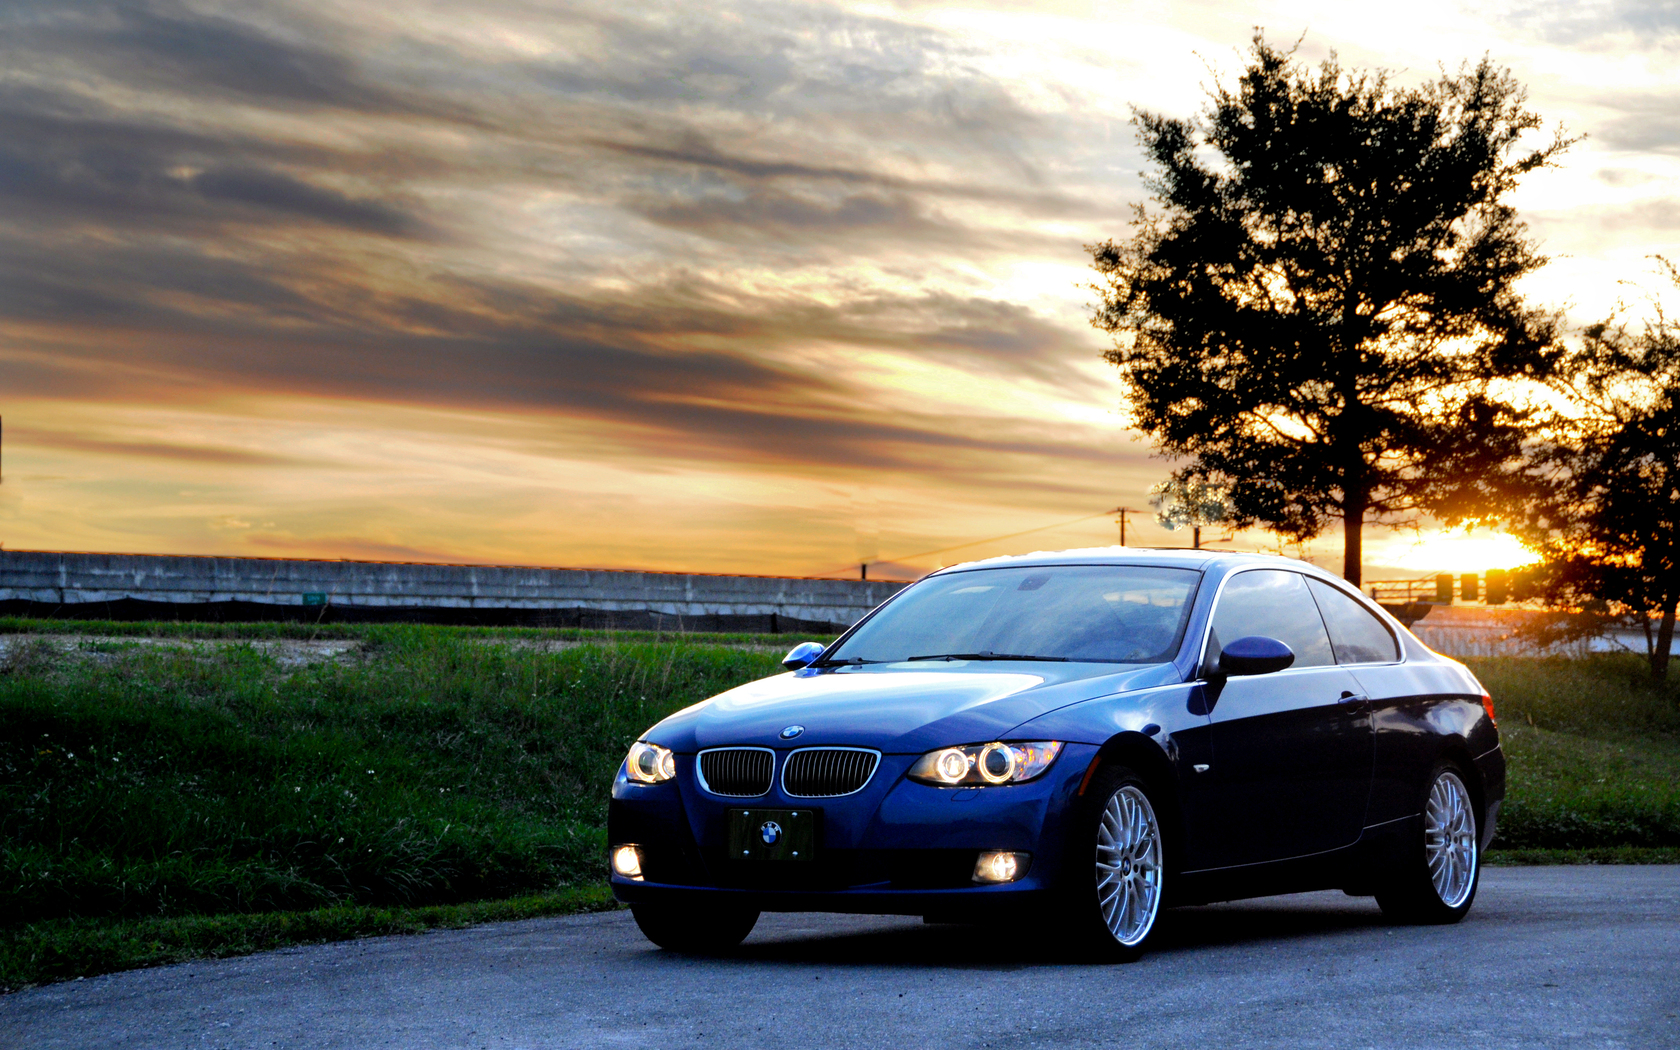 Bmw Car On Road Wallpapers 1680x1050 1972696